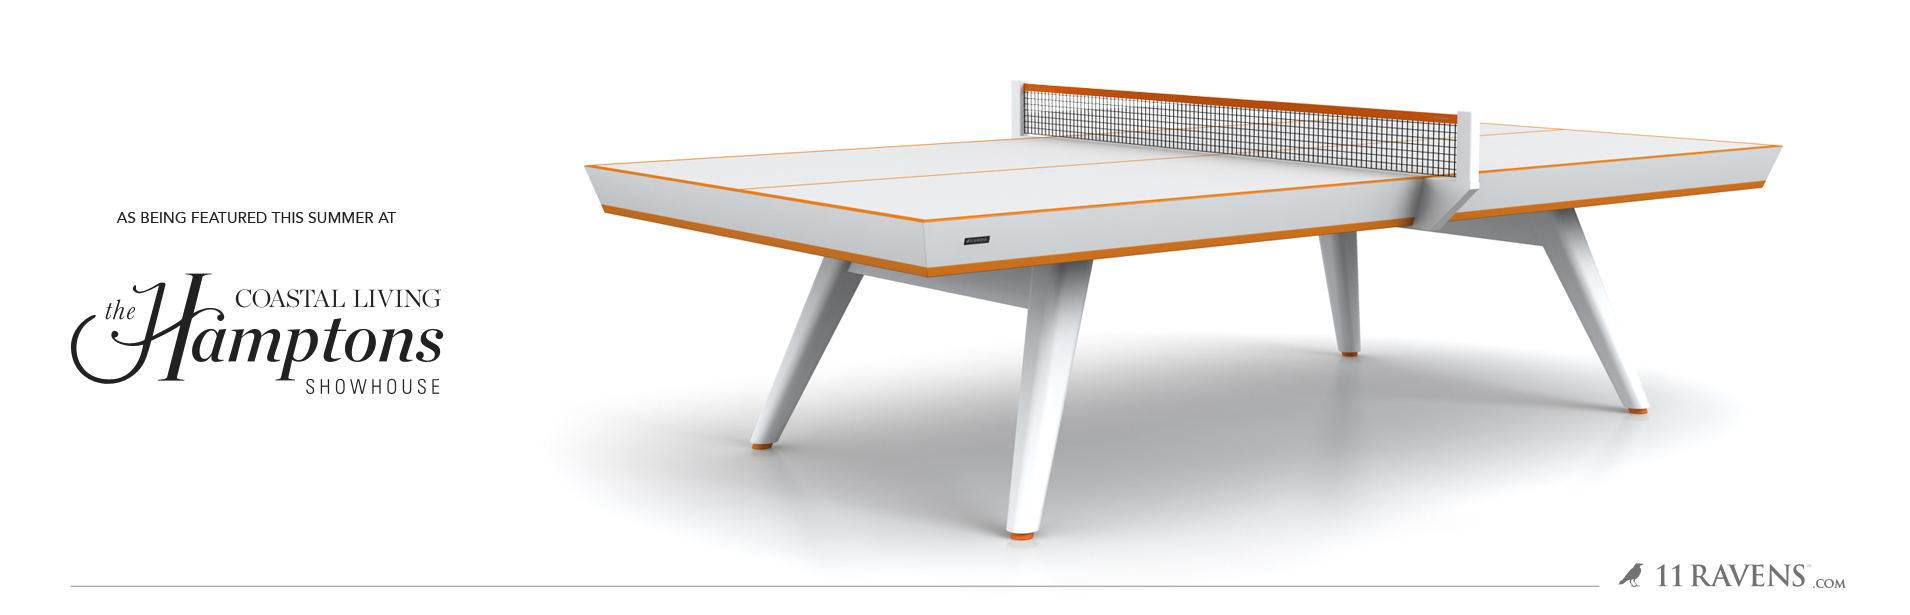 Hampton Table Tennis Table